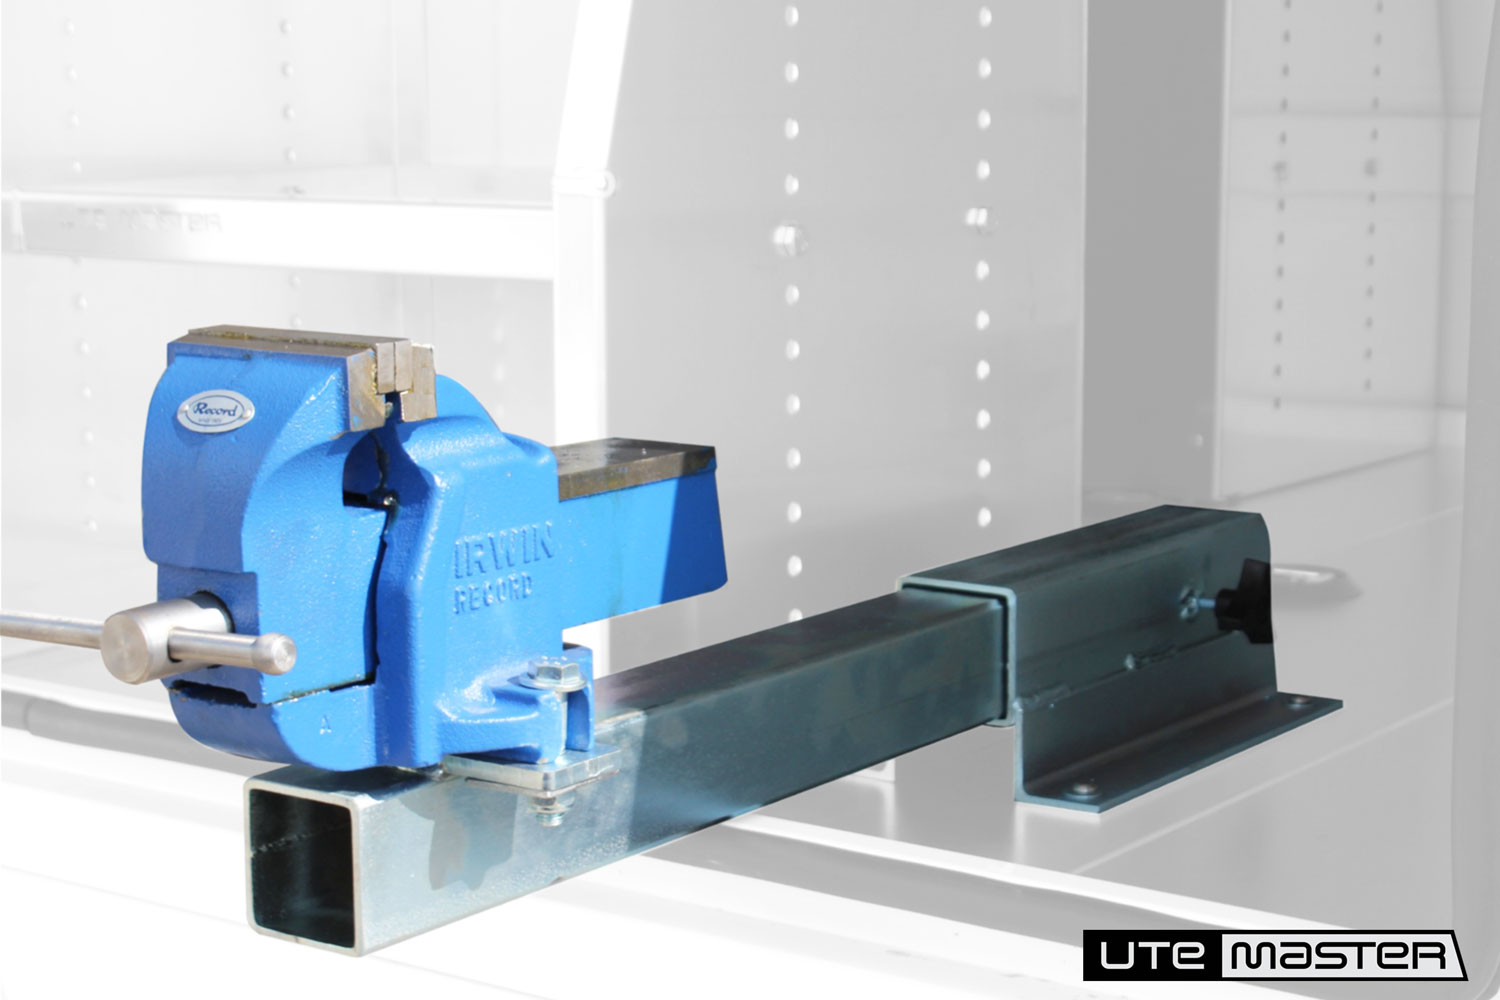 Lift Off Toolbox to suit Commercial Ute Removable Toolbox by Utemaster Lift off box body Slide Out Vice